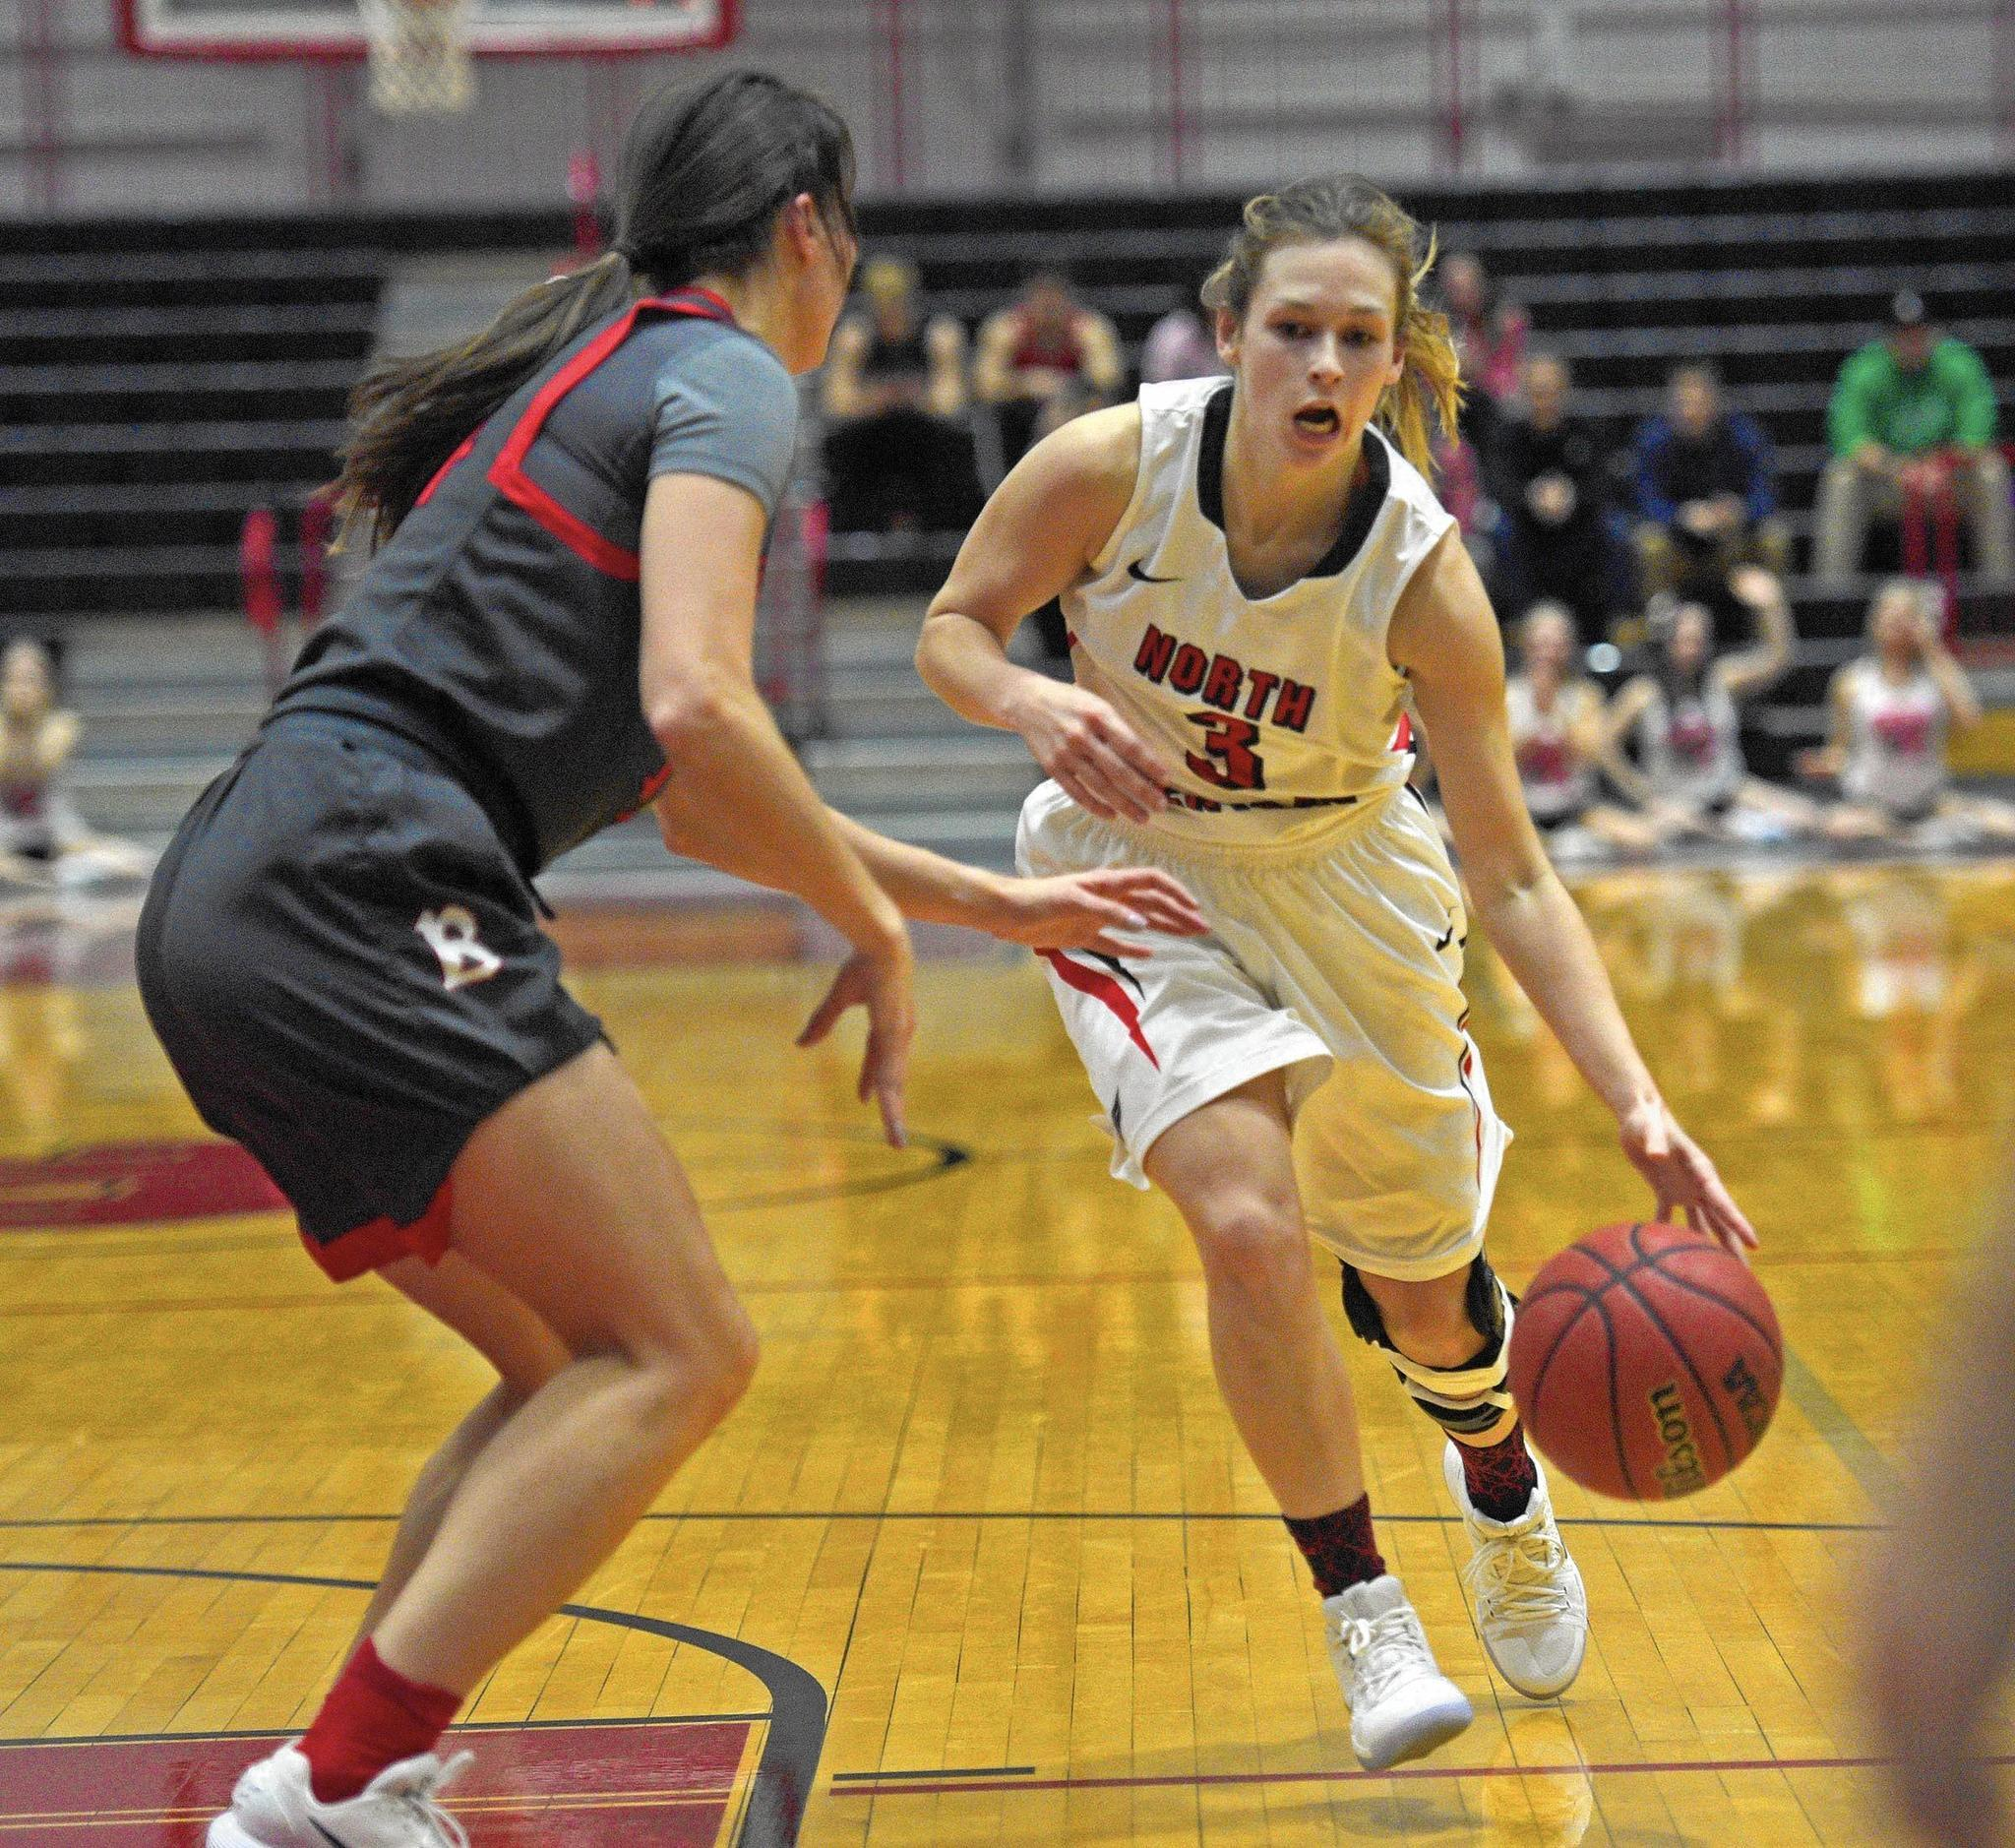 North Central's Mayson Whipple takes another step forward ...